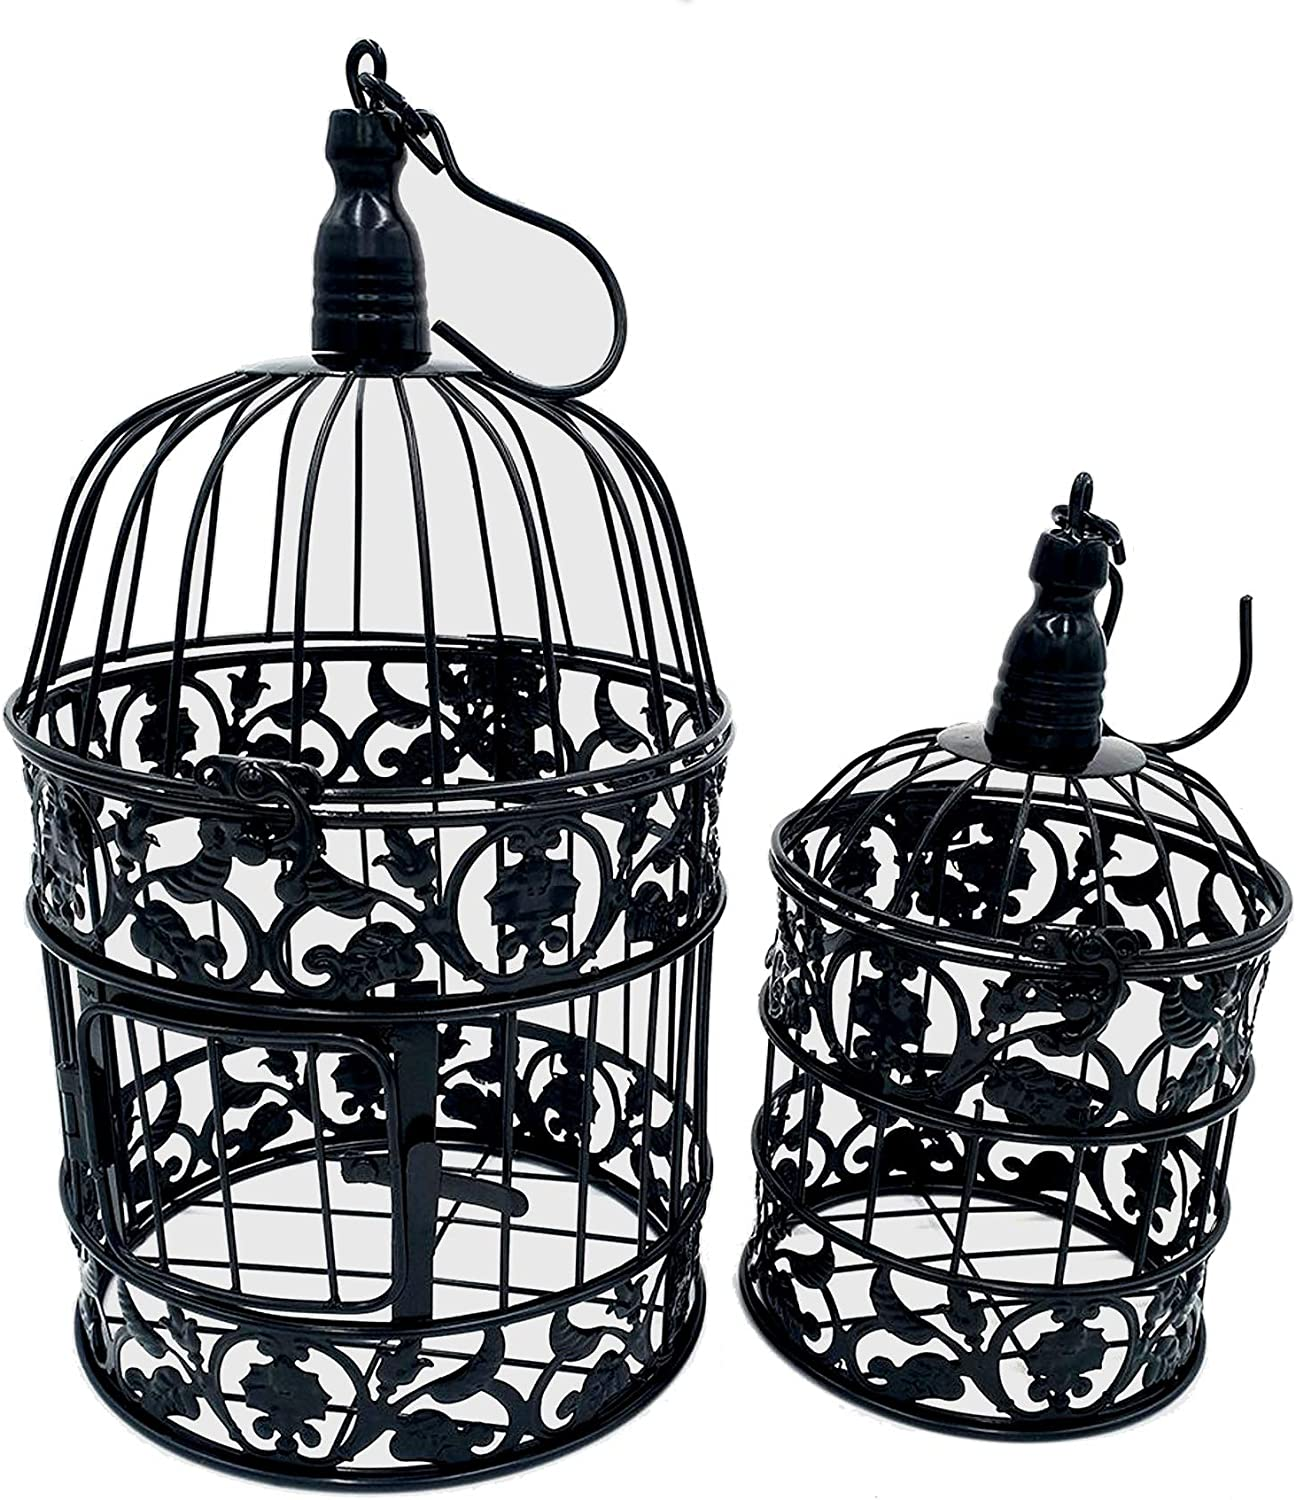 PET SHOW Max 42% OFF Special price for a limited time Pack of 2 Round Decor Hanging Wall Birdcages Metal Bird